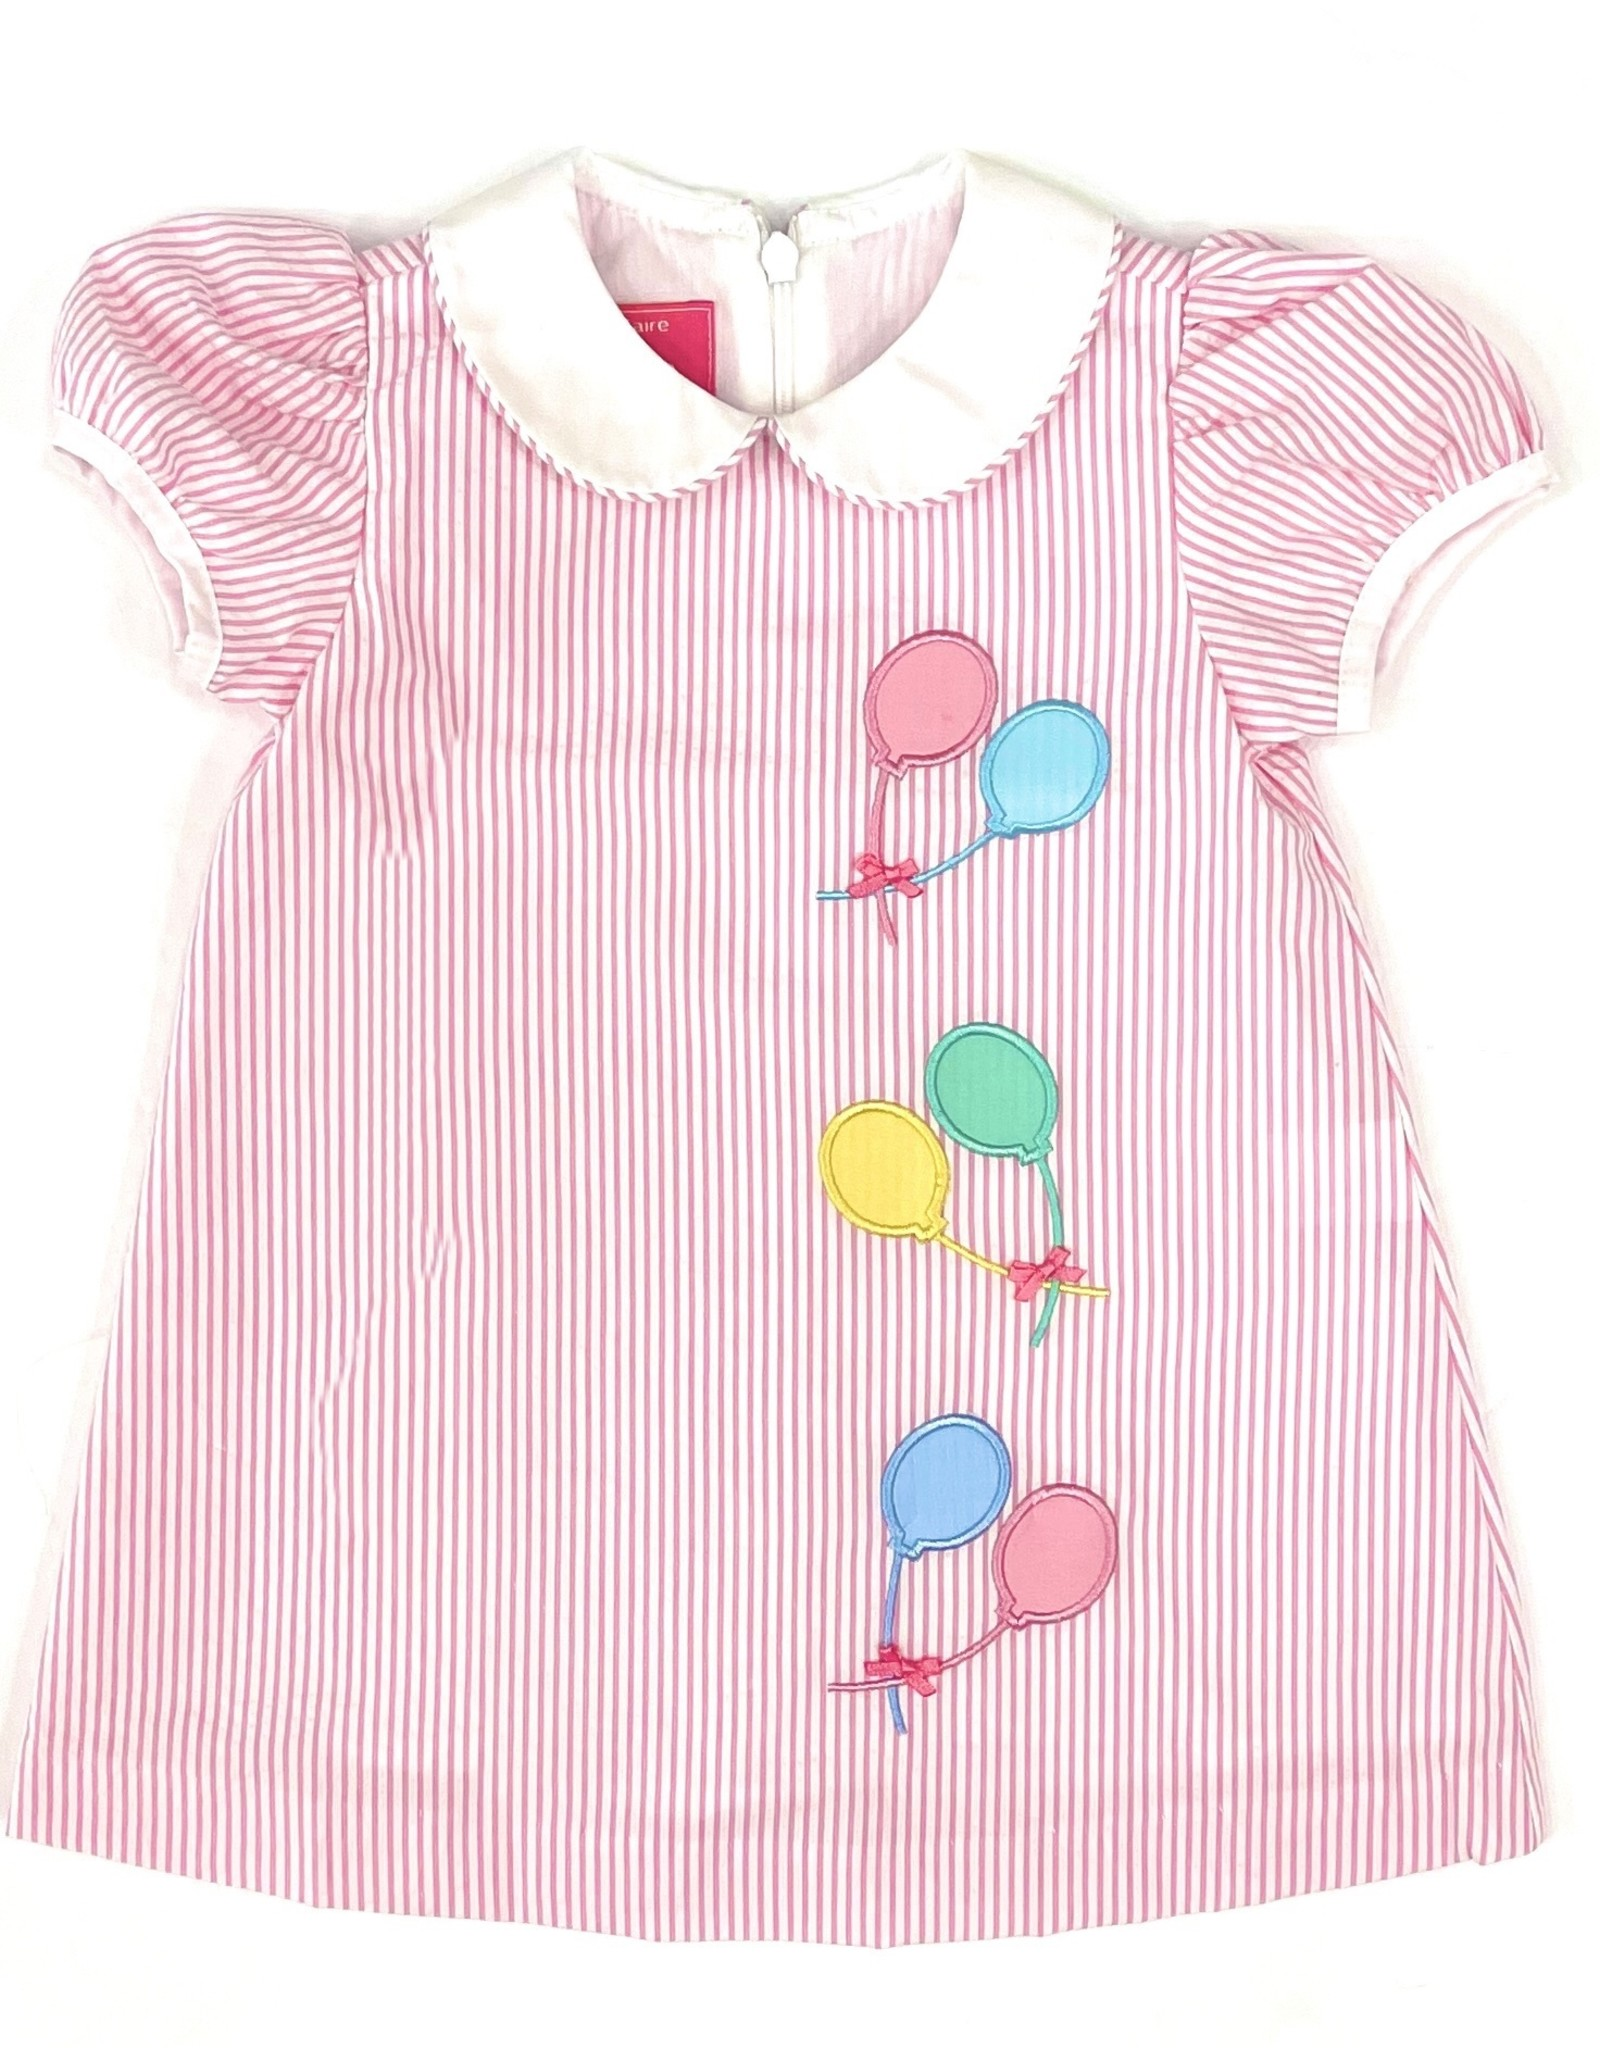 Claire and Charlie Birthday Balloons Float Dress With Collar